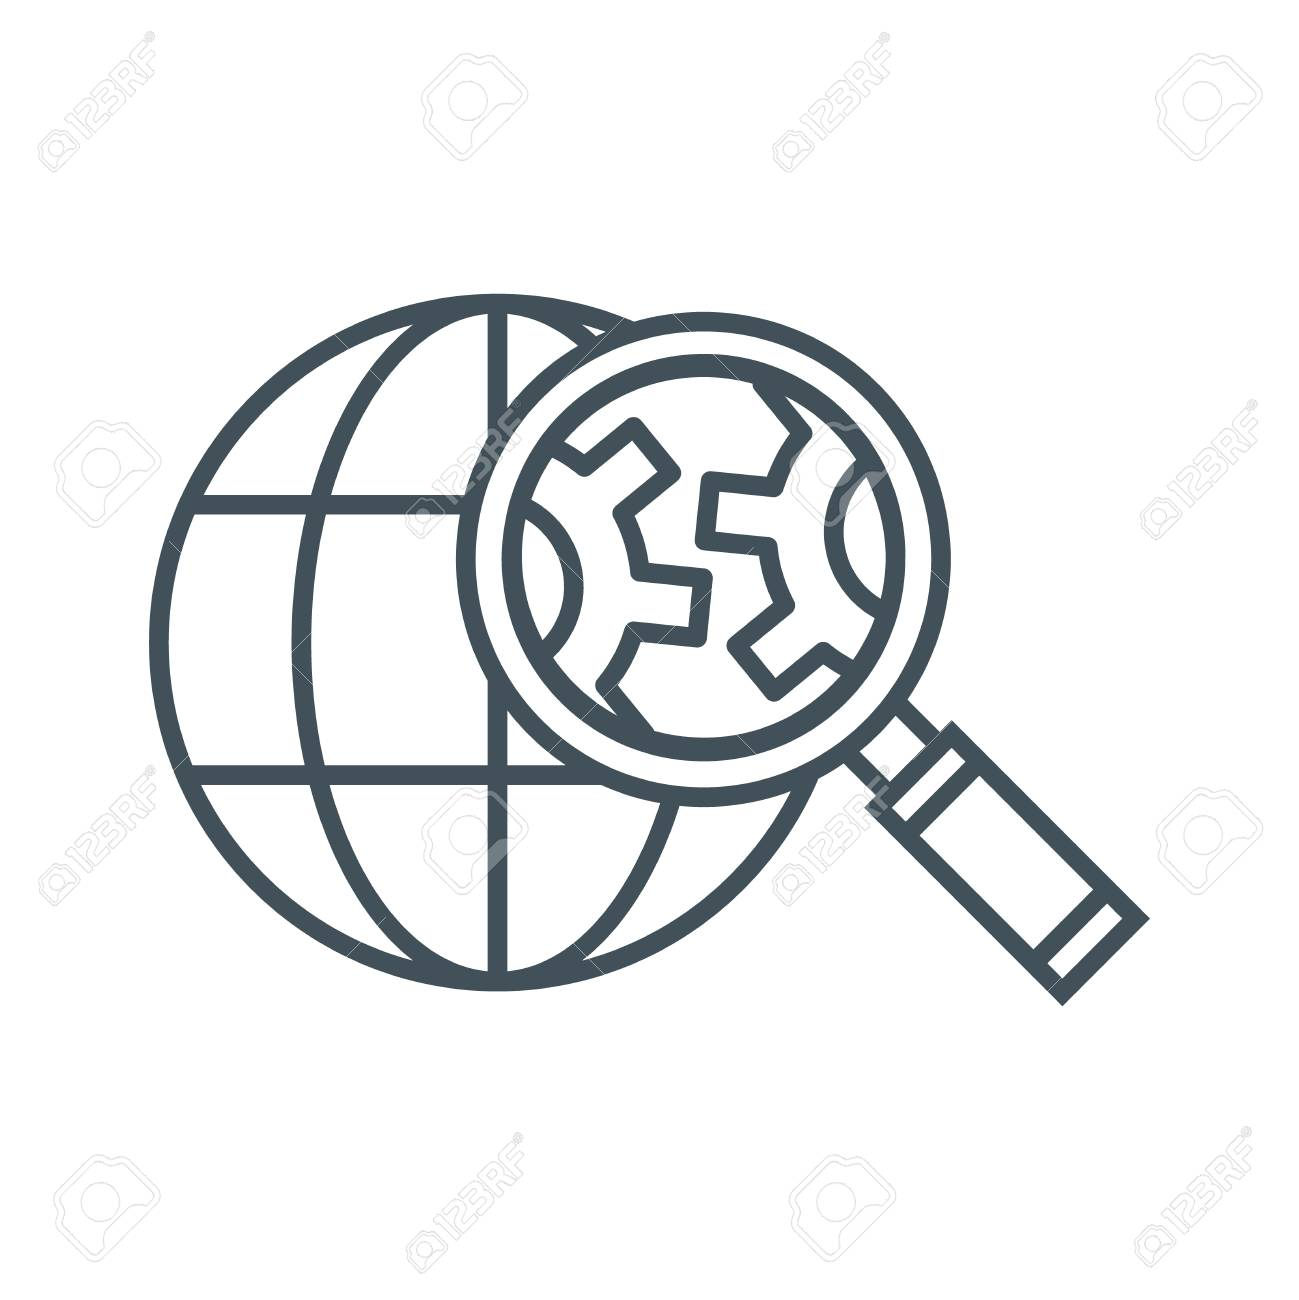 Search engine optimization icon suitable for info graphics, websites